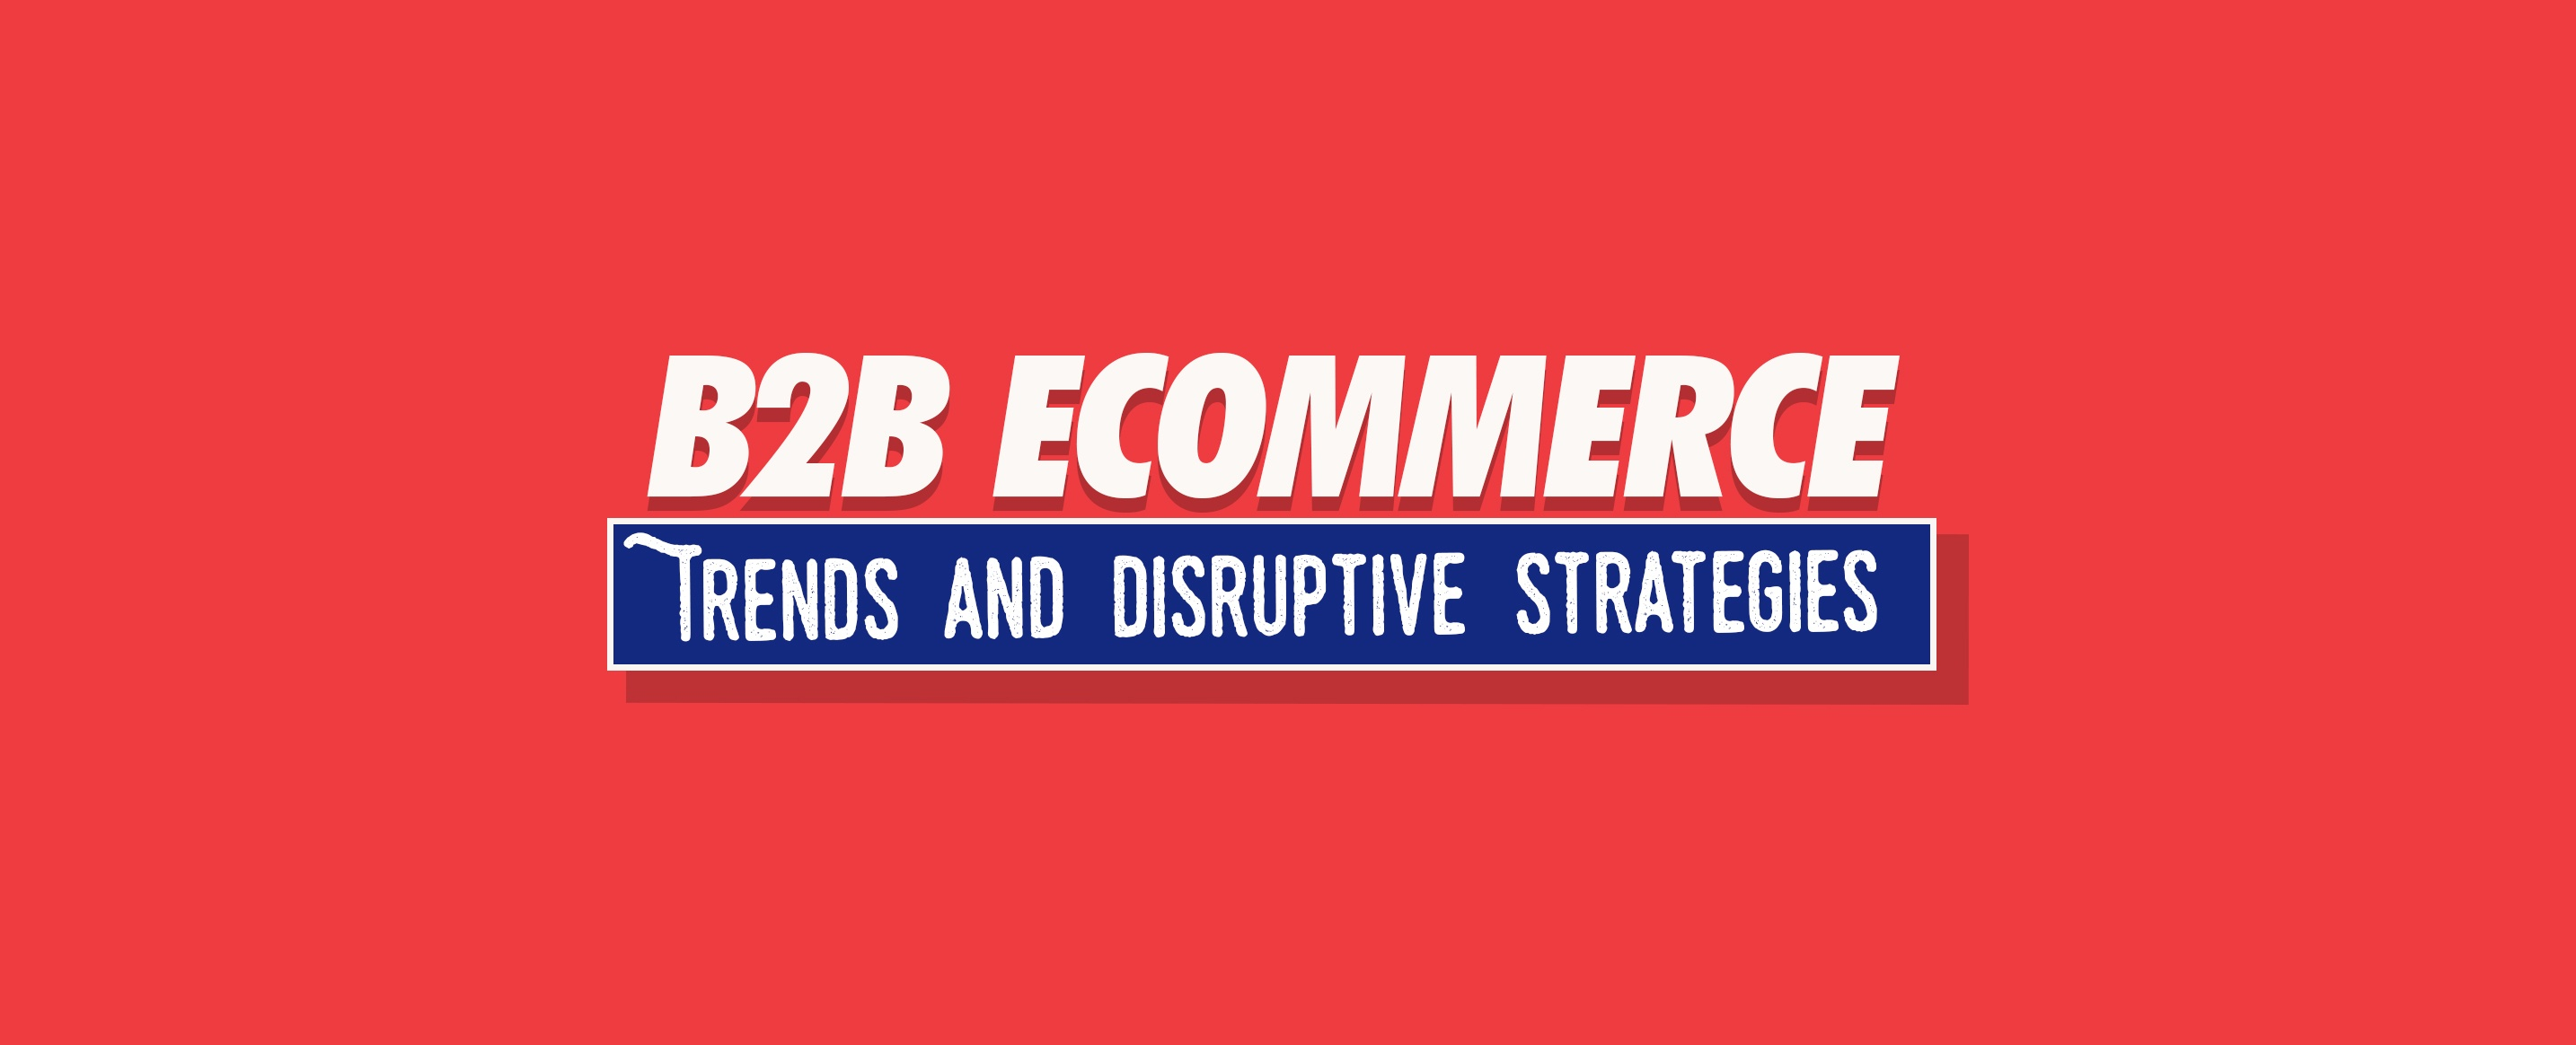 B2B-Ecommerce-Trends-and-Disruptive-Strategies---Embracing-Digital